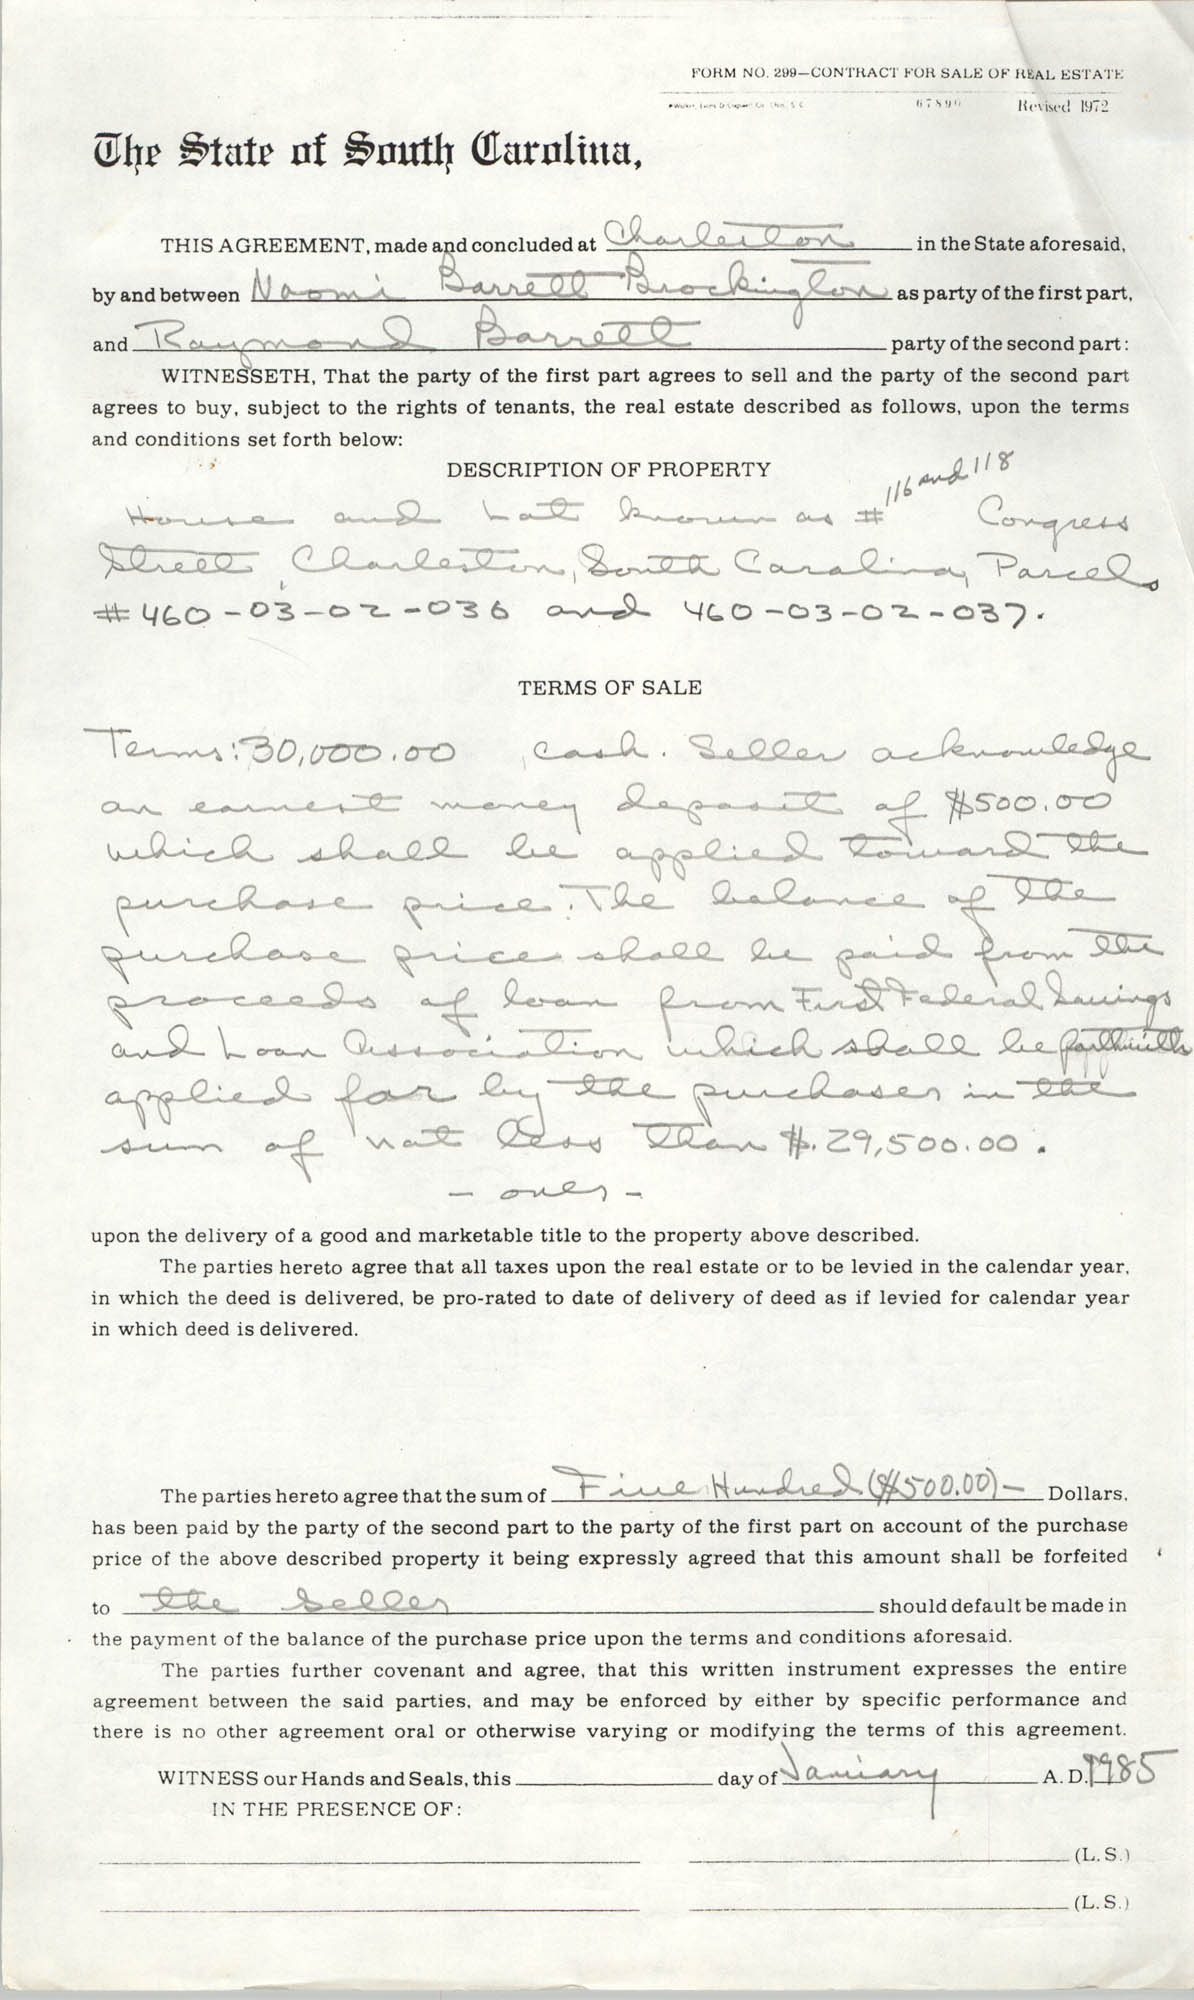 Contract for Sale of Real Estate, State of South Carolina, January 1985